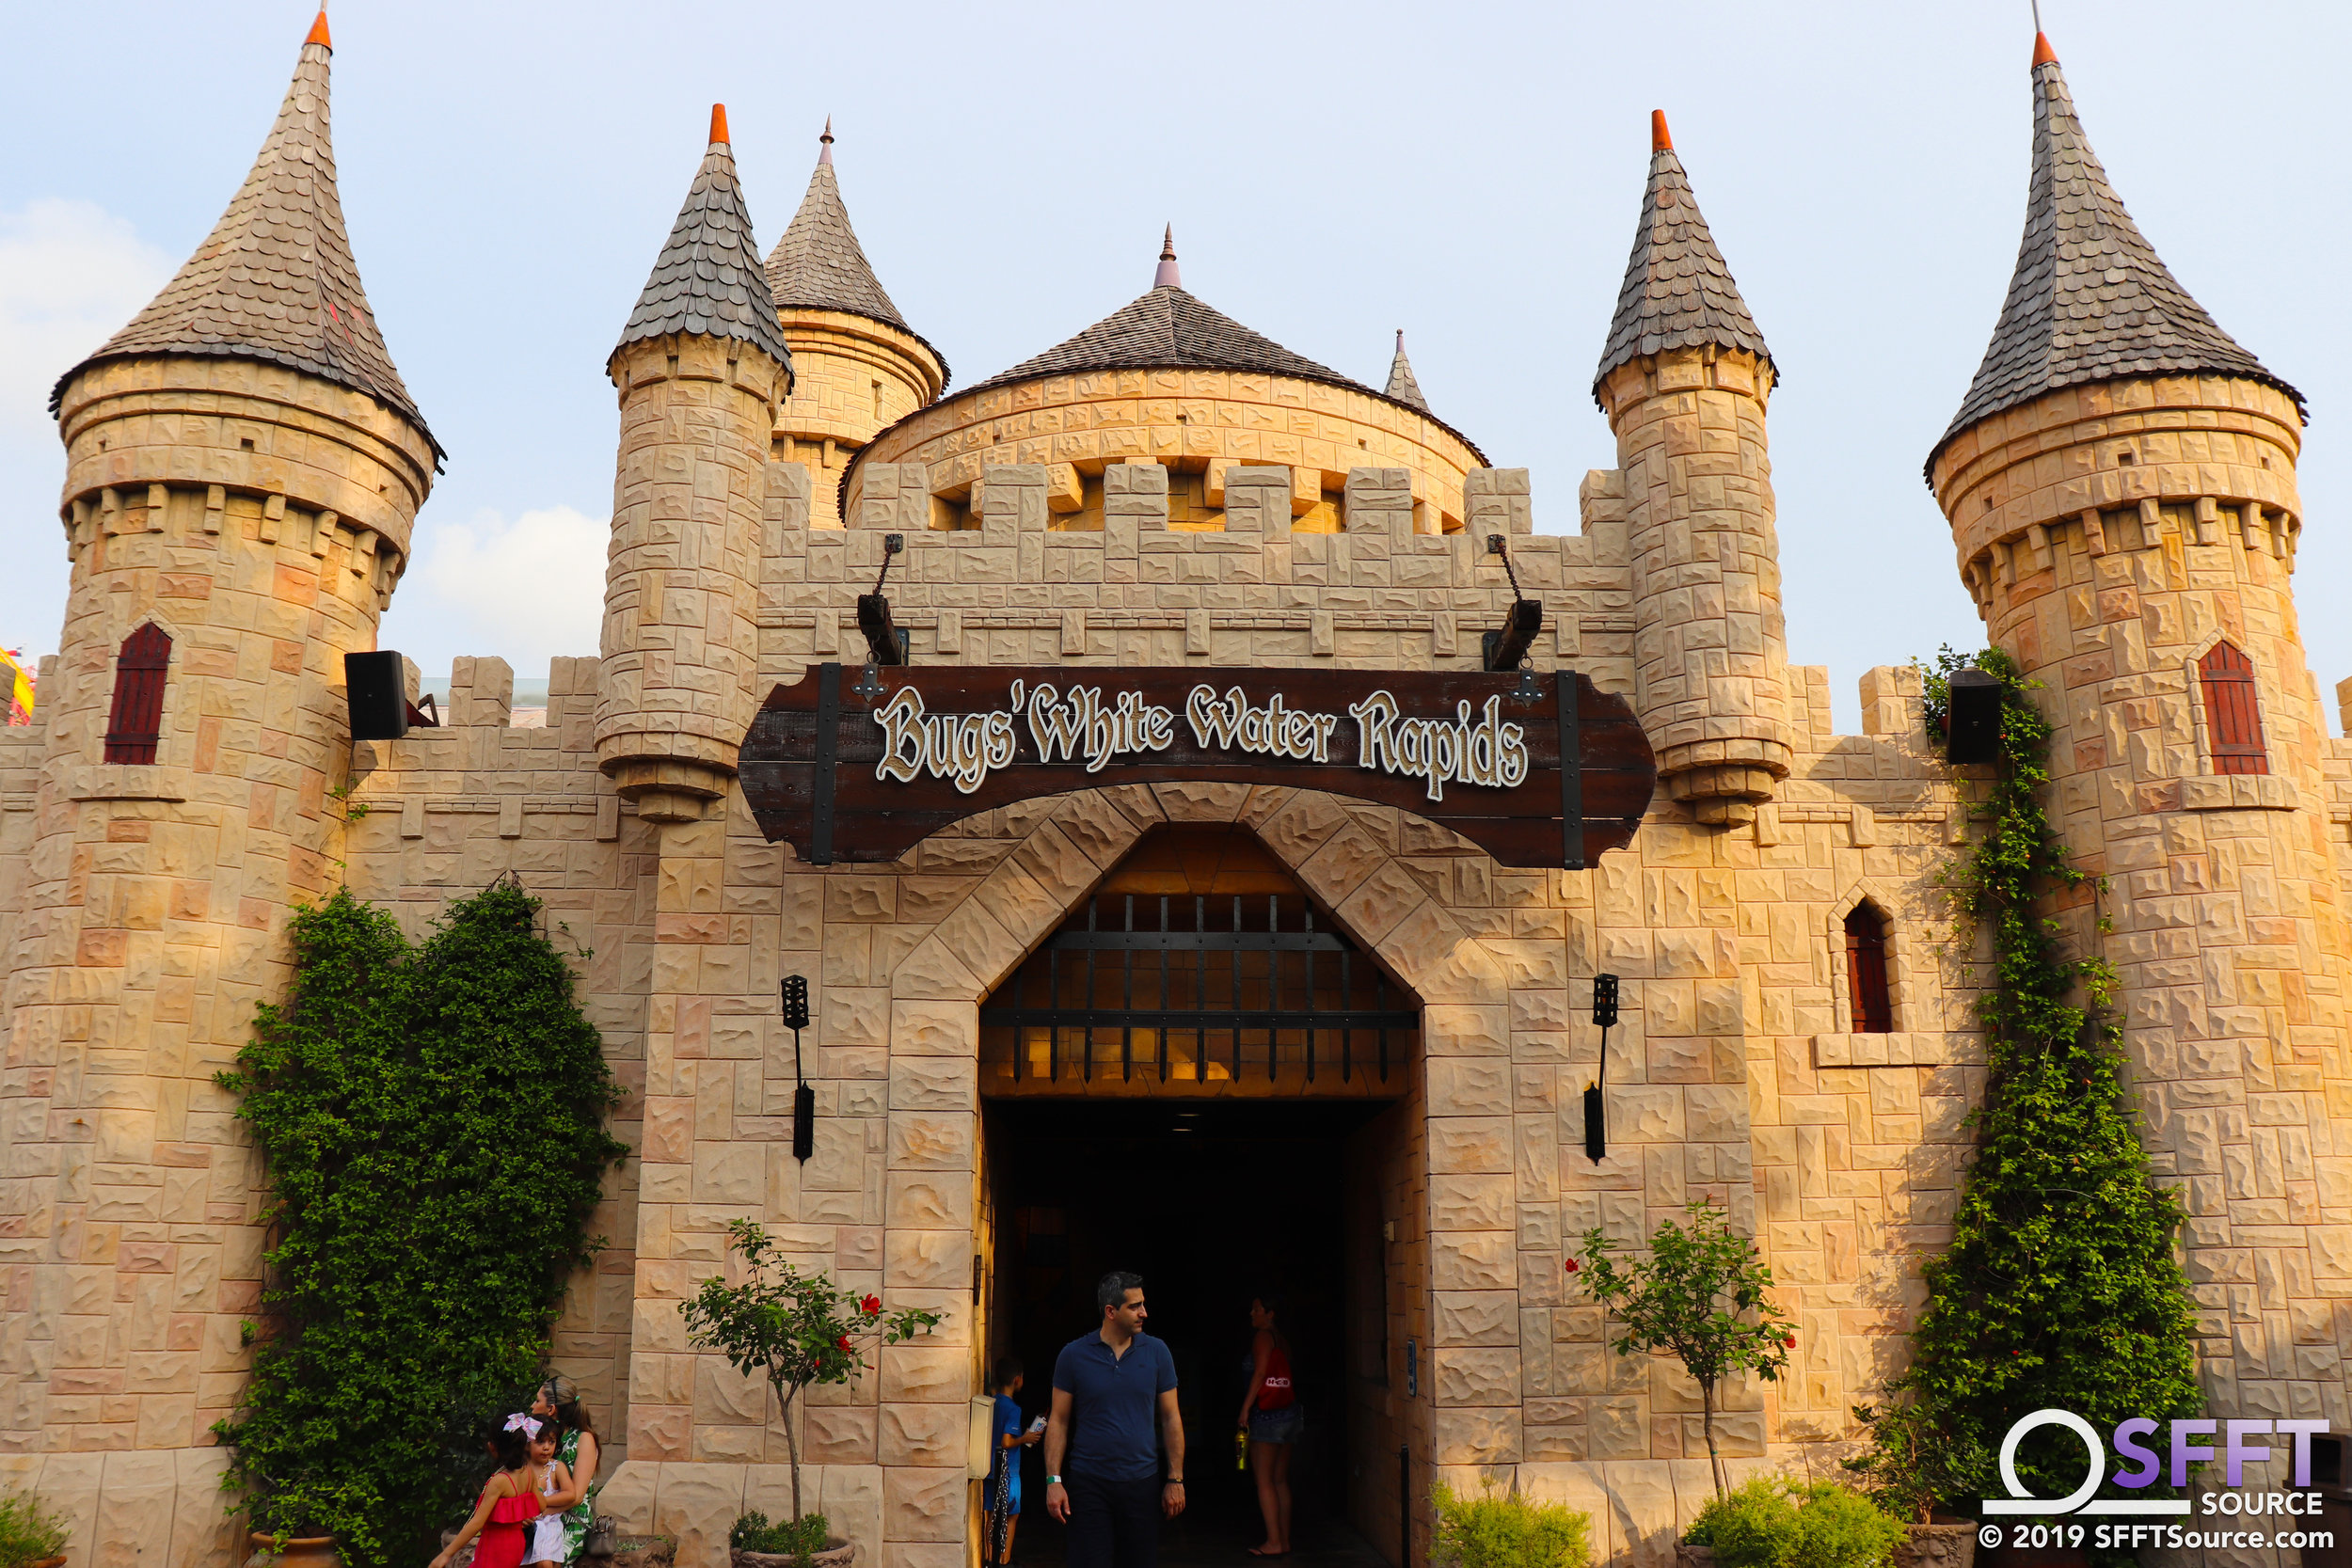 The main entrance to Bugs' White Water Rapids.